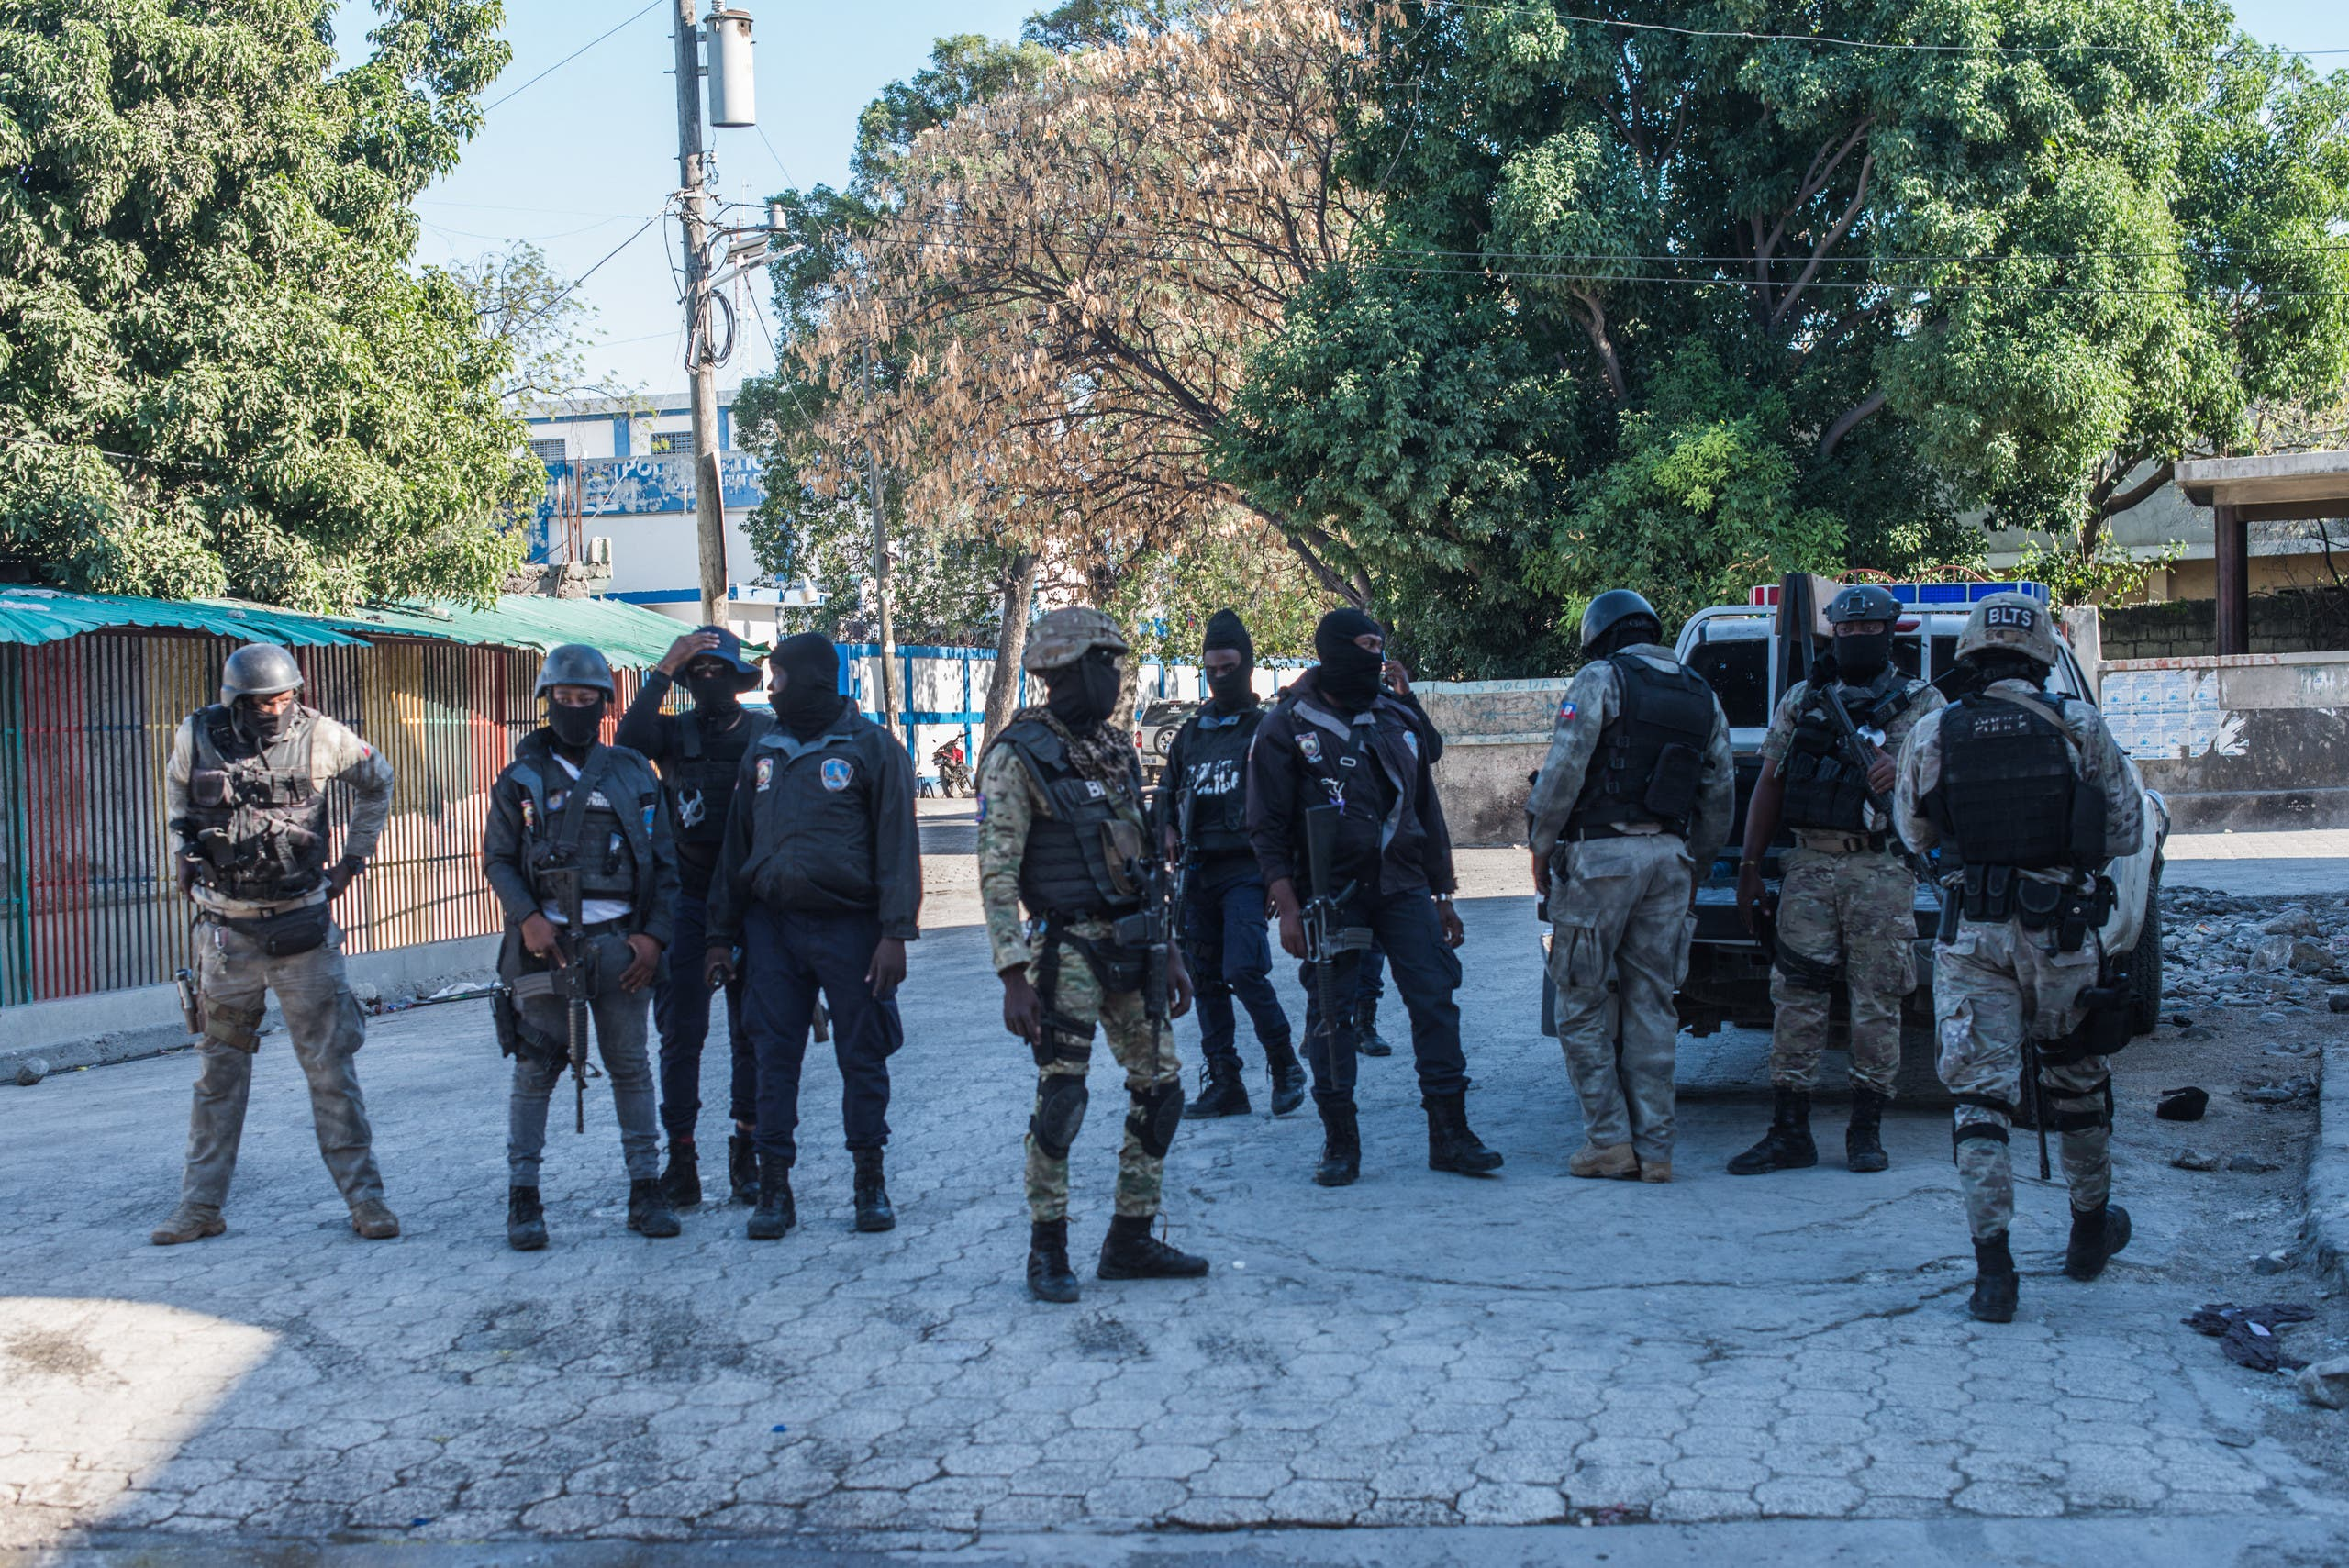 Several police officers from different specialized groups provide perimeter protection by the Croix-des-Bouquets prison from where many prisoners escaped and where several people were killed, in Croix-des-Bouquets, suburb of the Haitian capital, on February 25, 2021 AFP